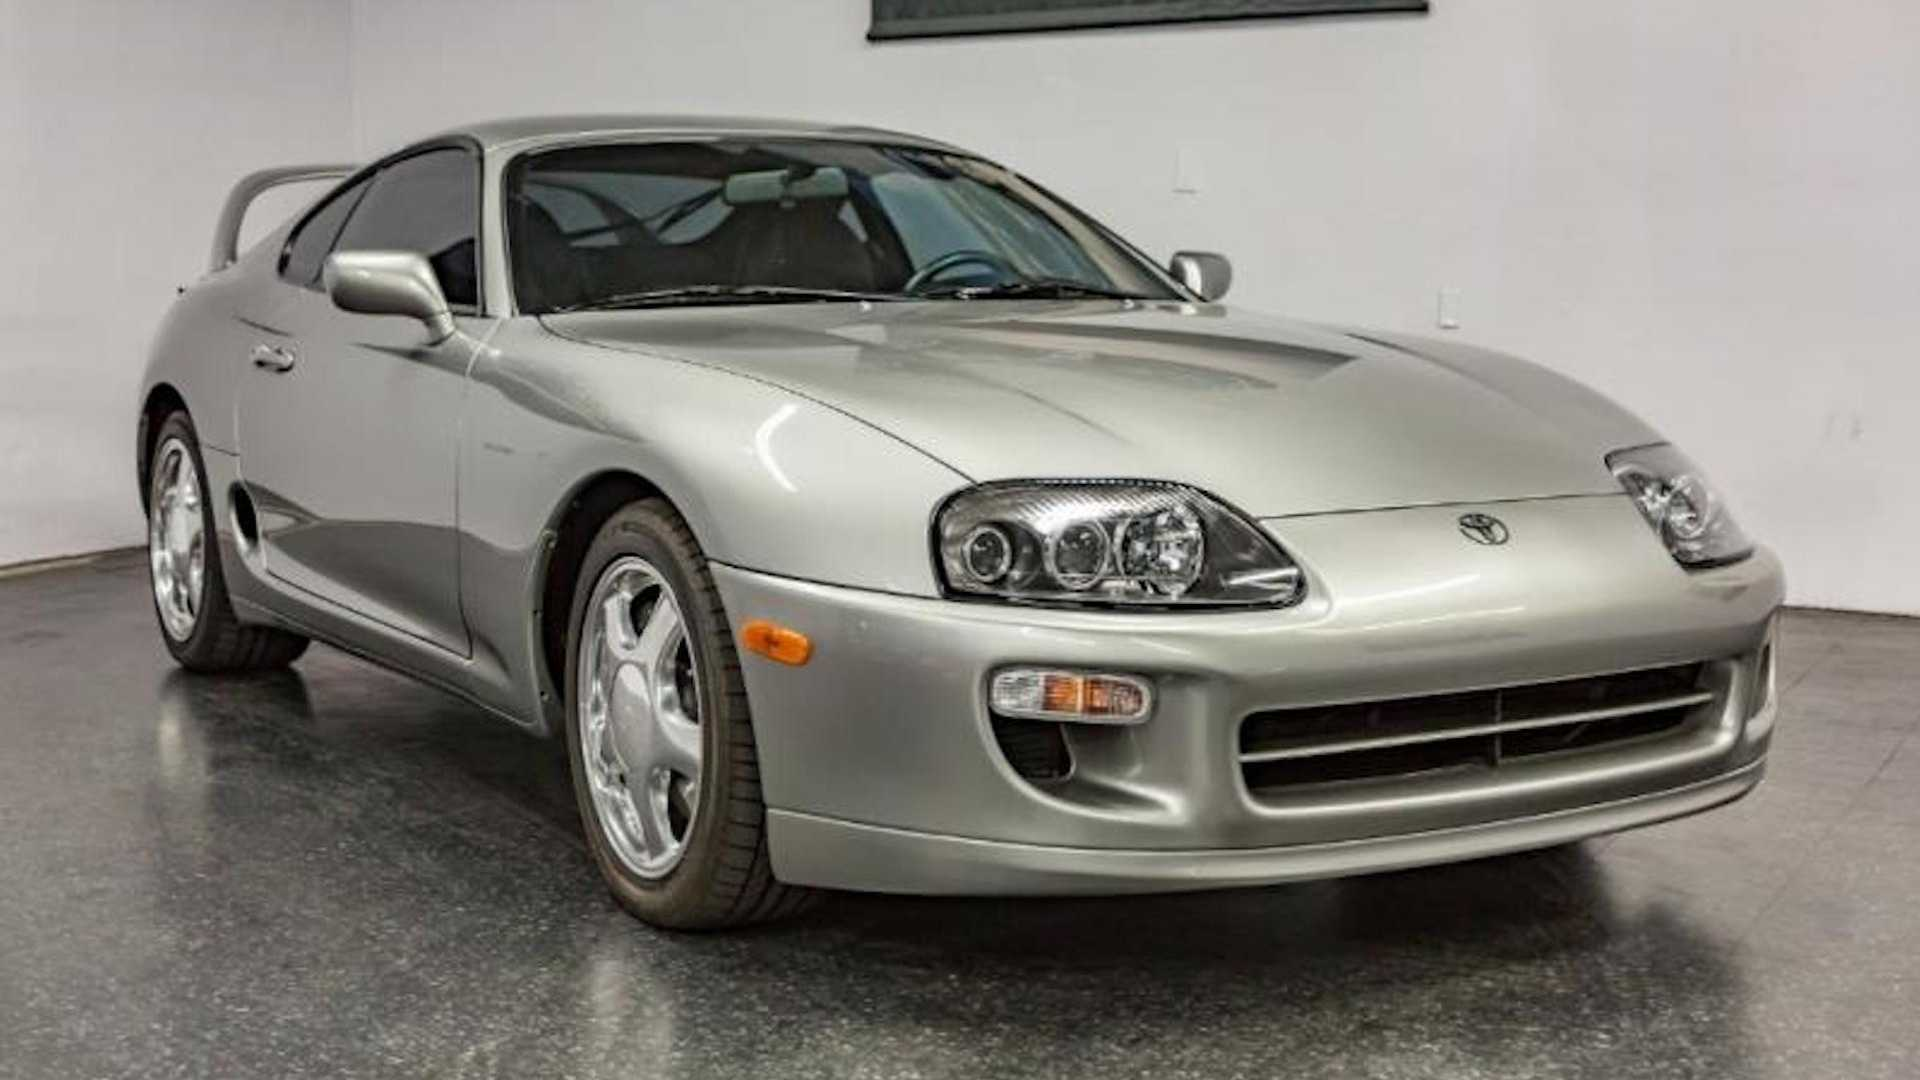 Would You Pay $500,000 For A Mint-Condition 1998 Toyota Supra?